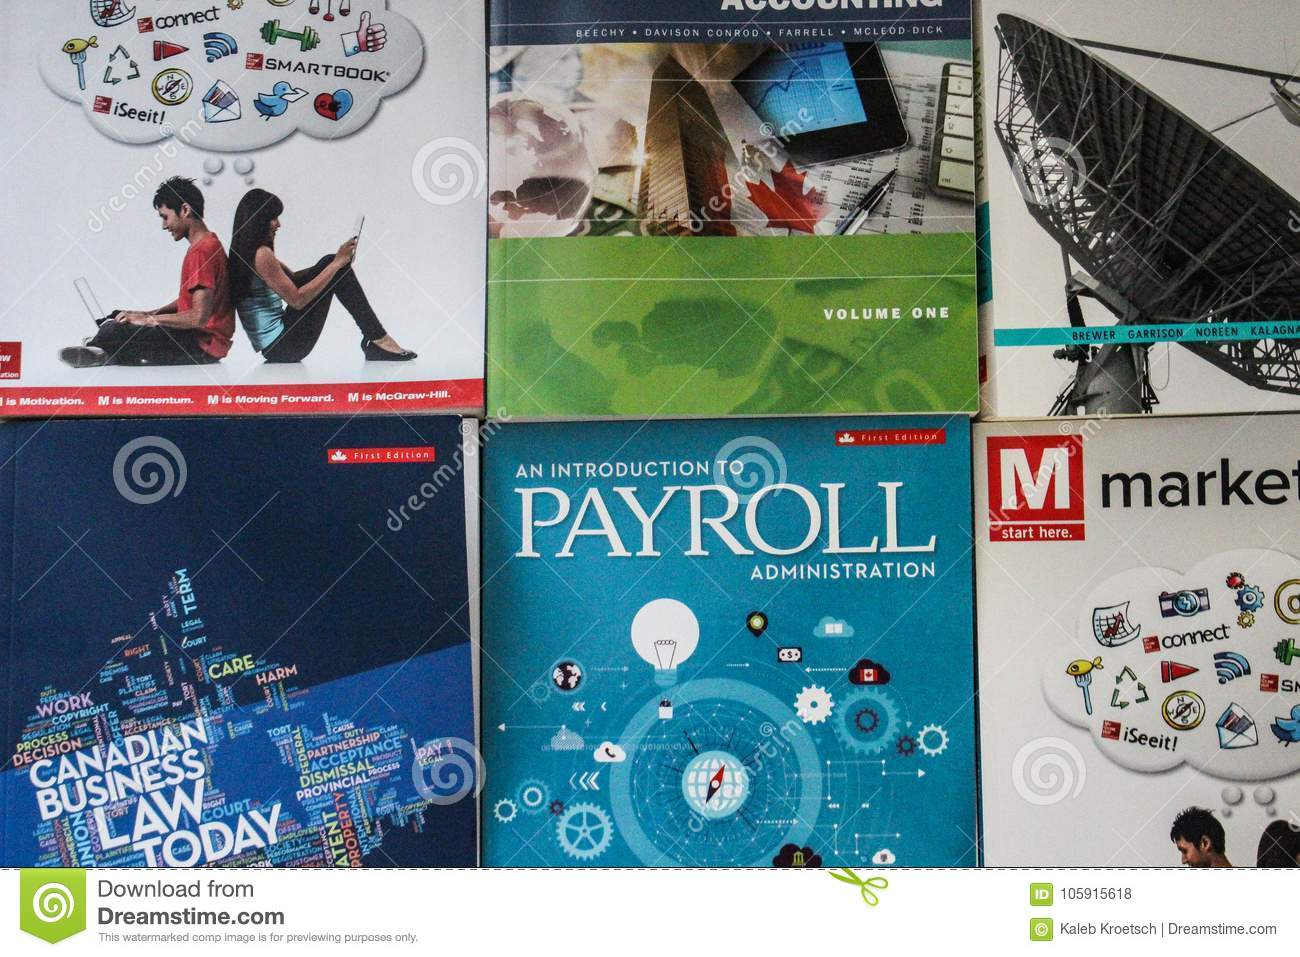 2017-12-13 - LONDON ONTARIO - EDITORIAL PHOTO OF A VARIETY OF MCGRAW HILL BUSINESS TEXTBOOKS USED IN UNIVERSITIES AND COLLEGES